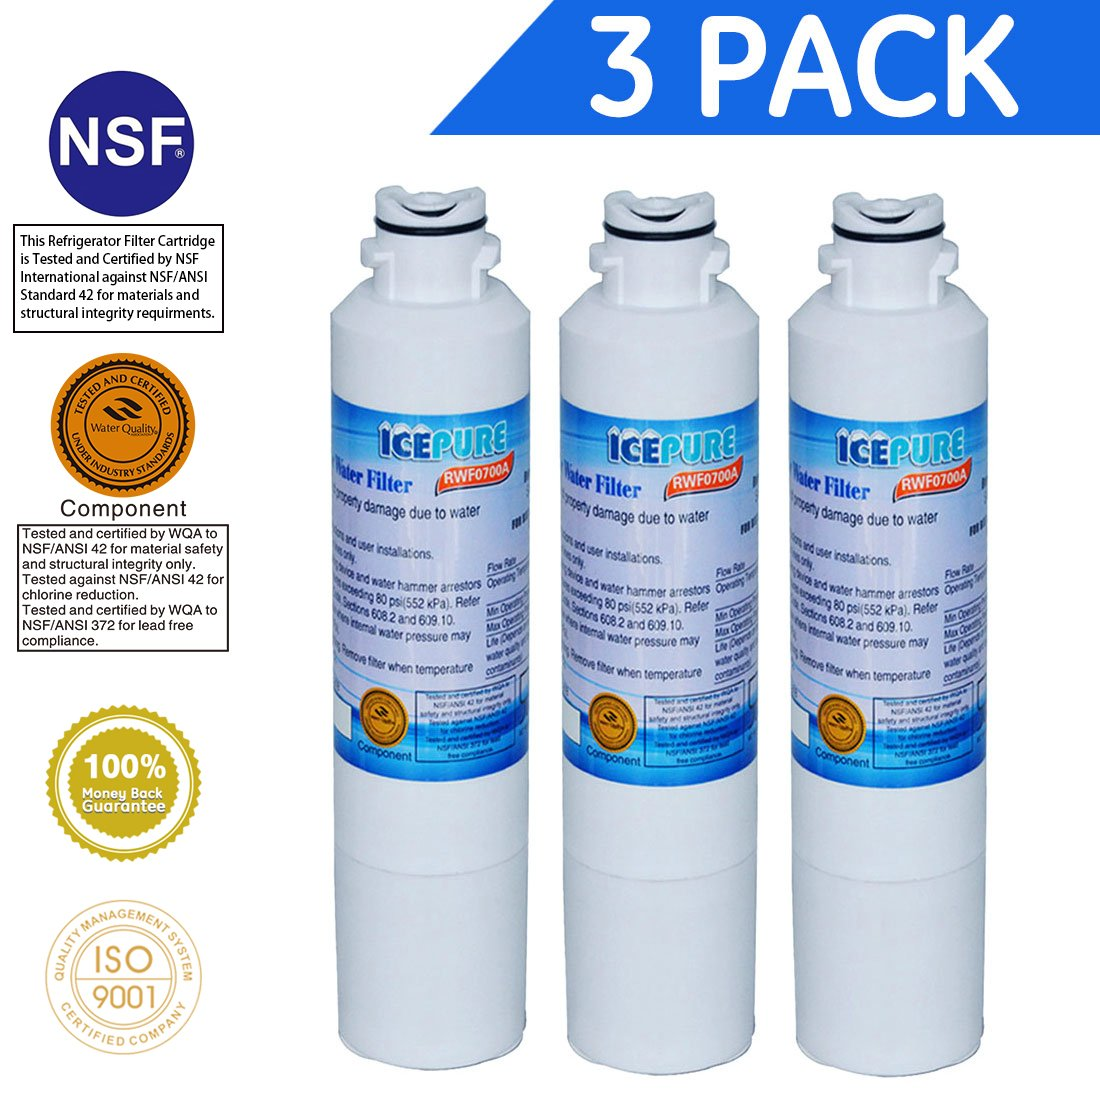 Icepure DA2900020B Refrigerator Water Filter Replacement for Samsung DA2900020B, DA2900020A,HAF-CIN EXP,46-9101(3 PACK)